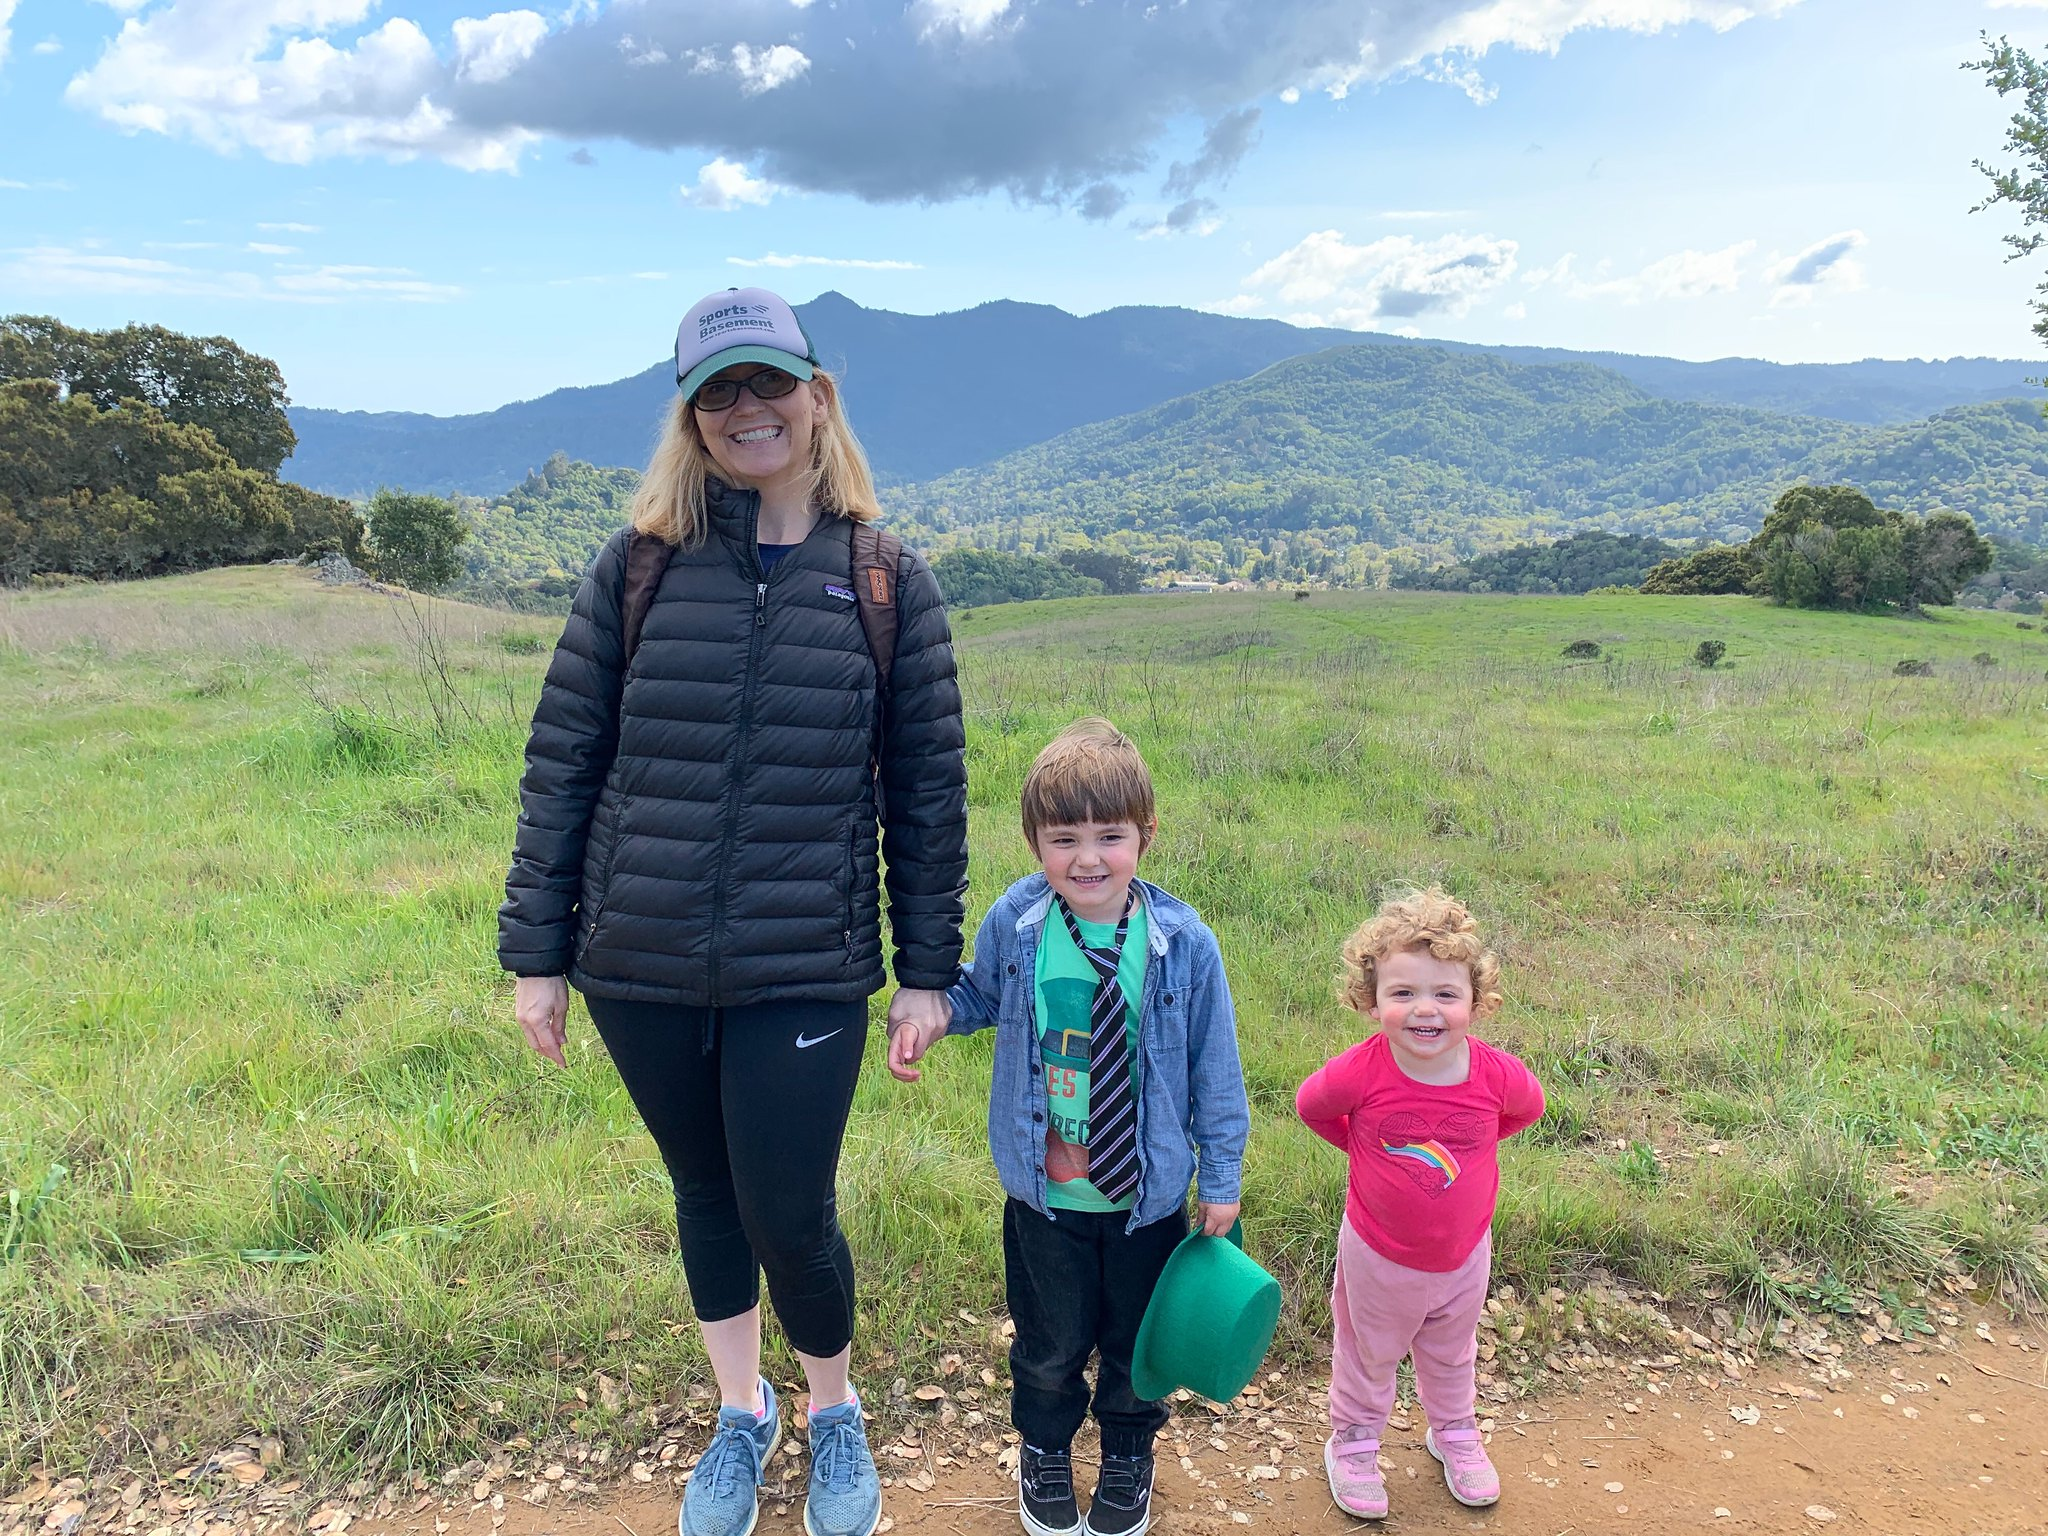 Family Adventure Hike at Terra Linda & Sleepy Hollow Open Space